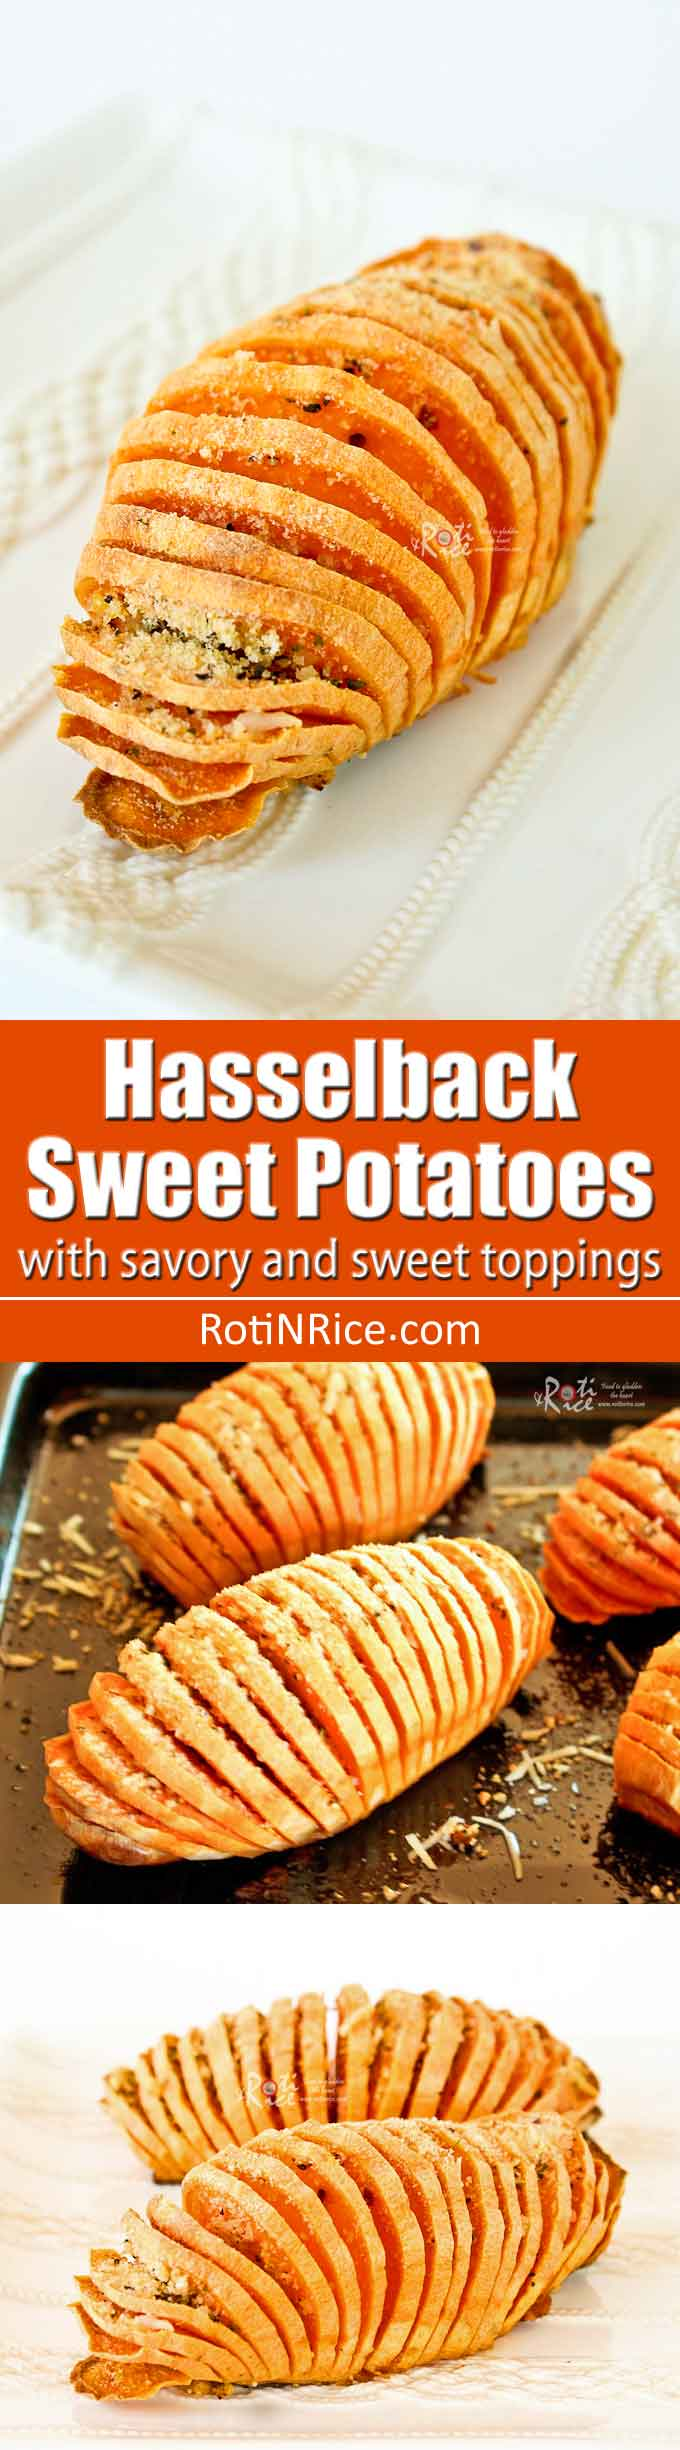 These Hasselback Sweet Potatoes are a simple yet elegant and tasty side dish for your holiday table. Recipe includes a savory and sweet toppings. | RotiNRice.com